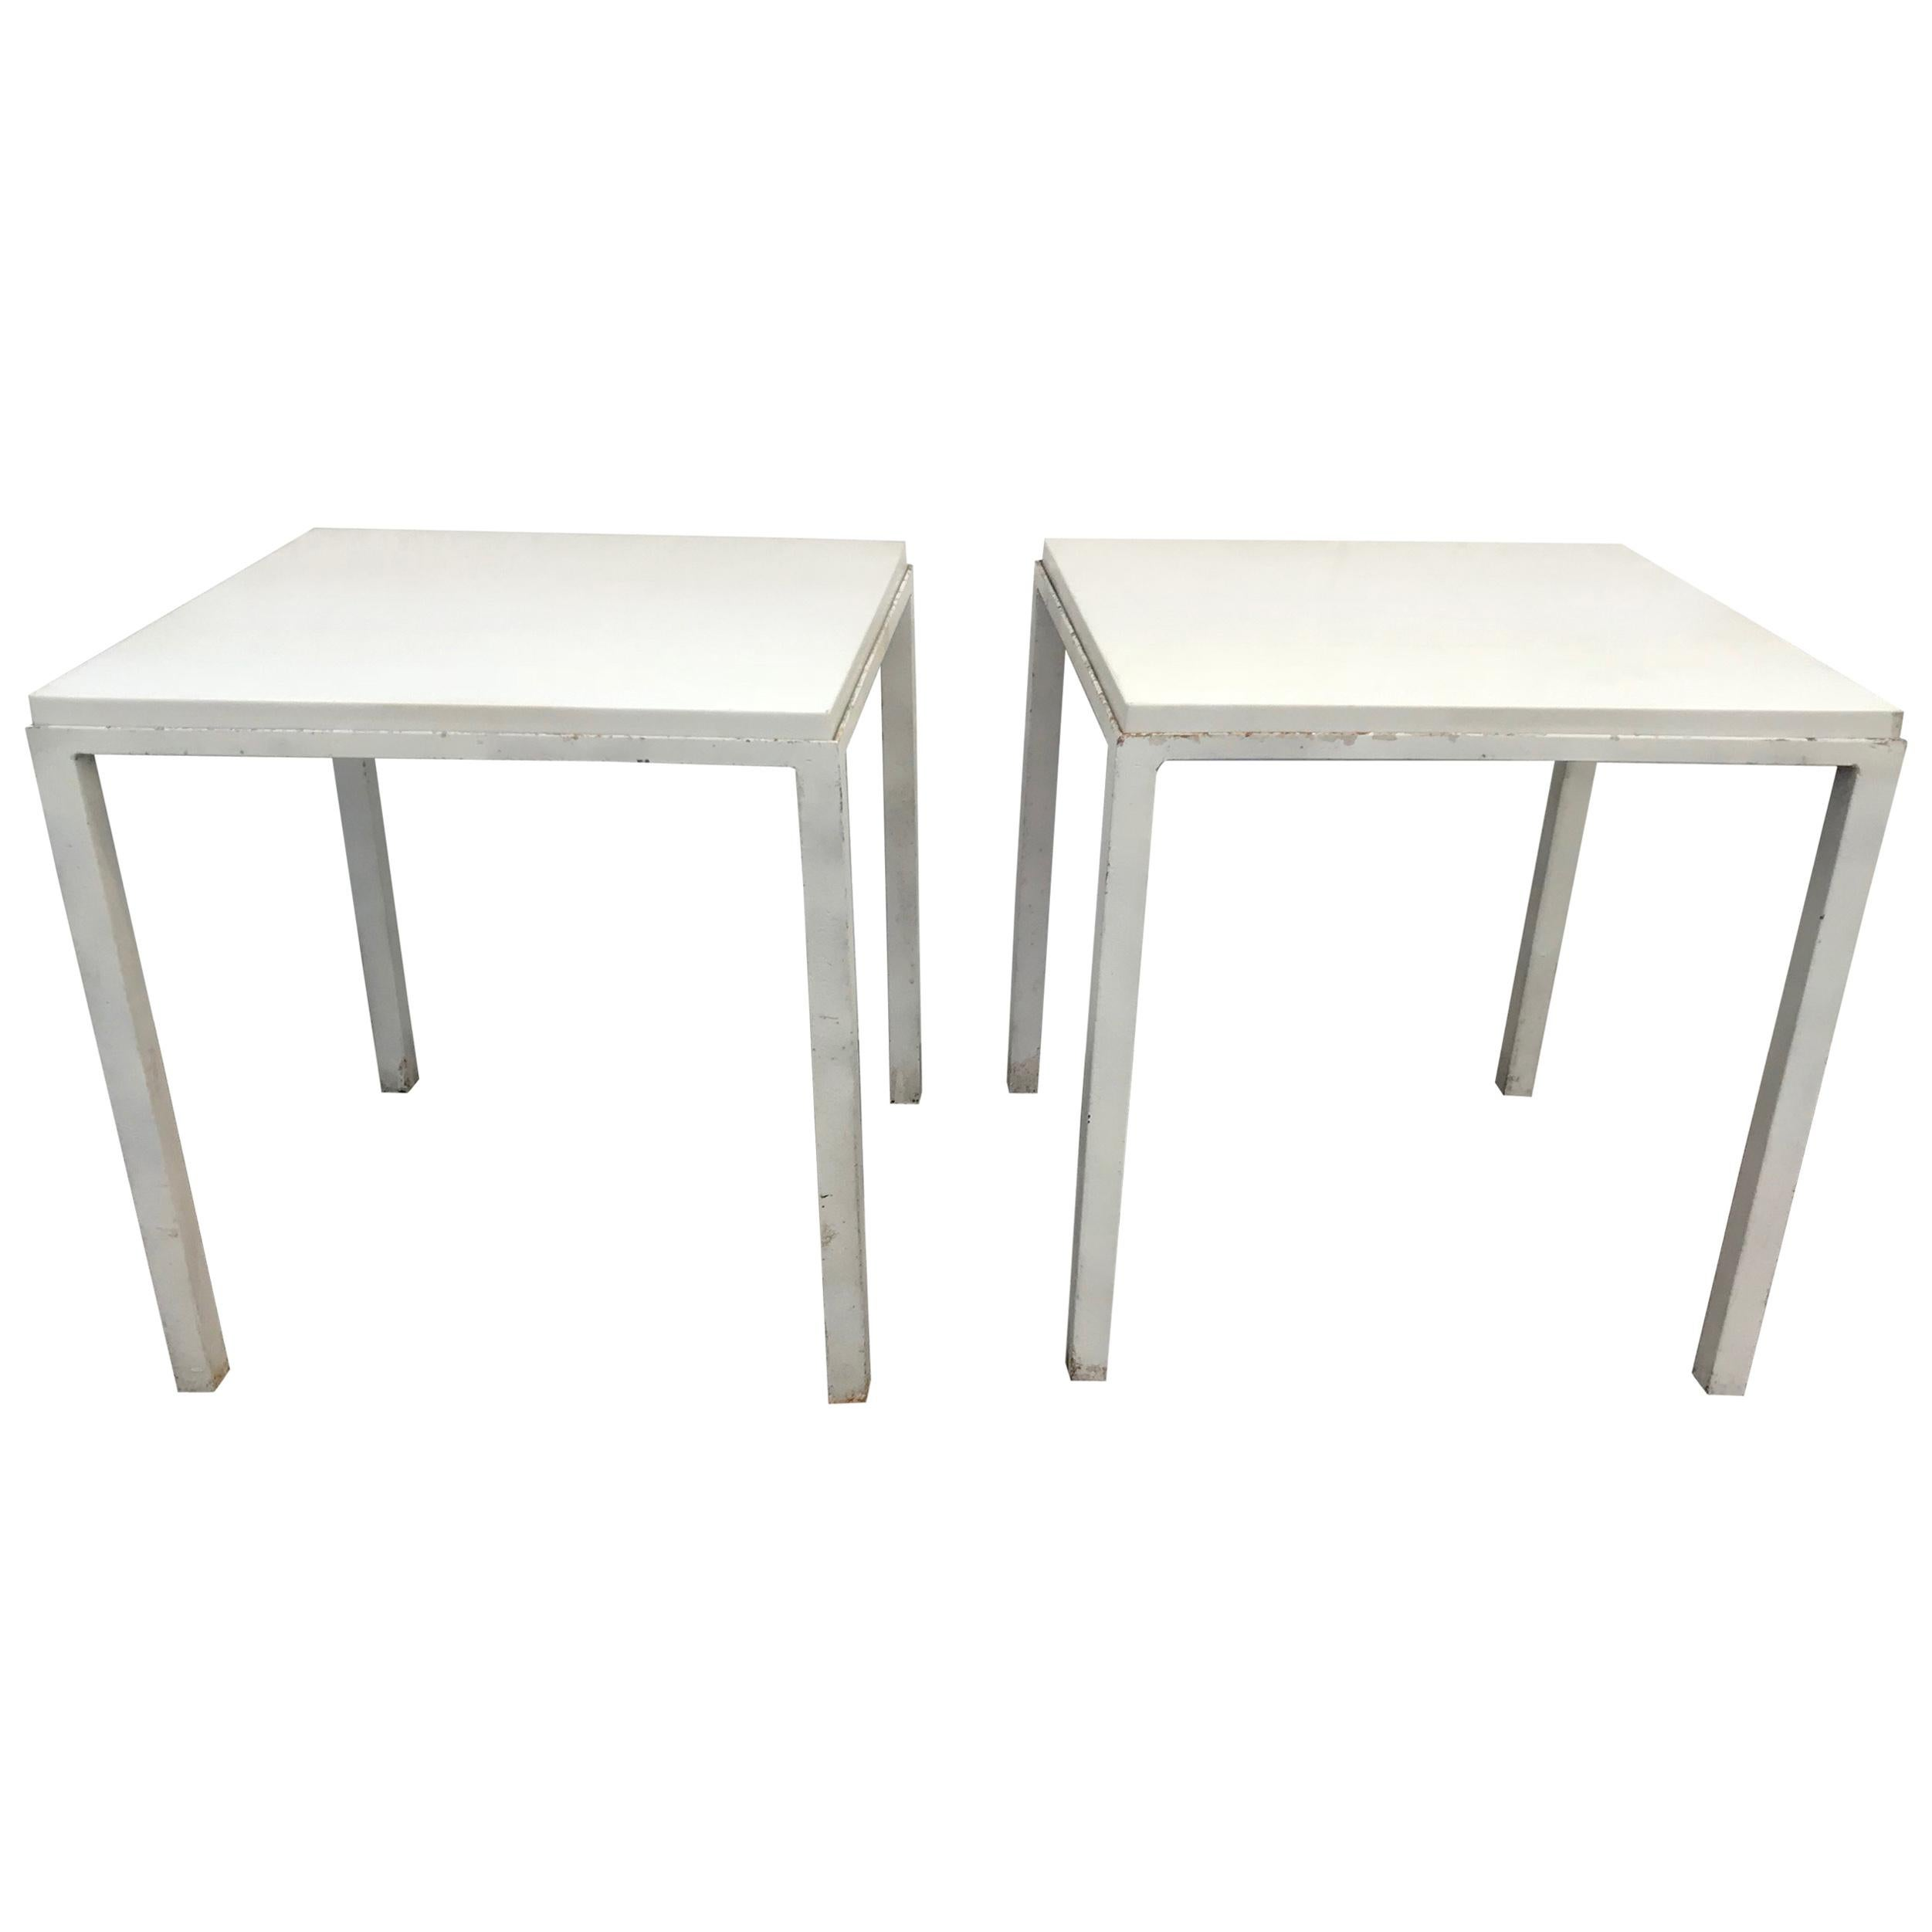 Pair of White Enameled Metal and Granite Side Tables, USA, circa 1955